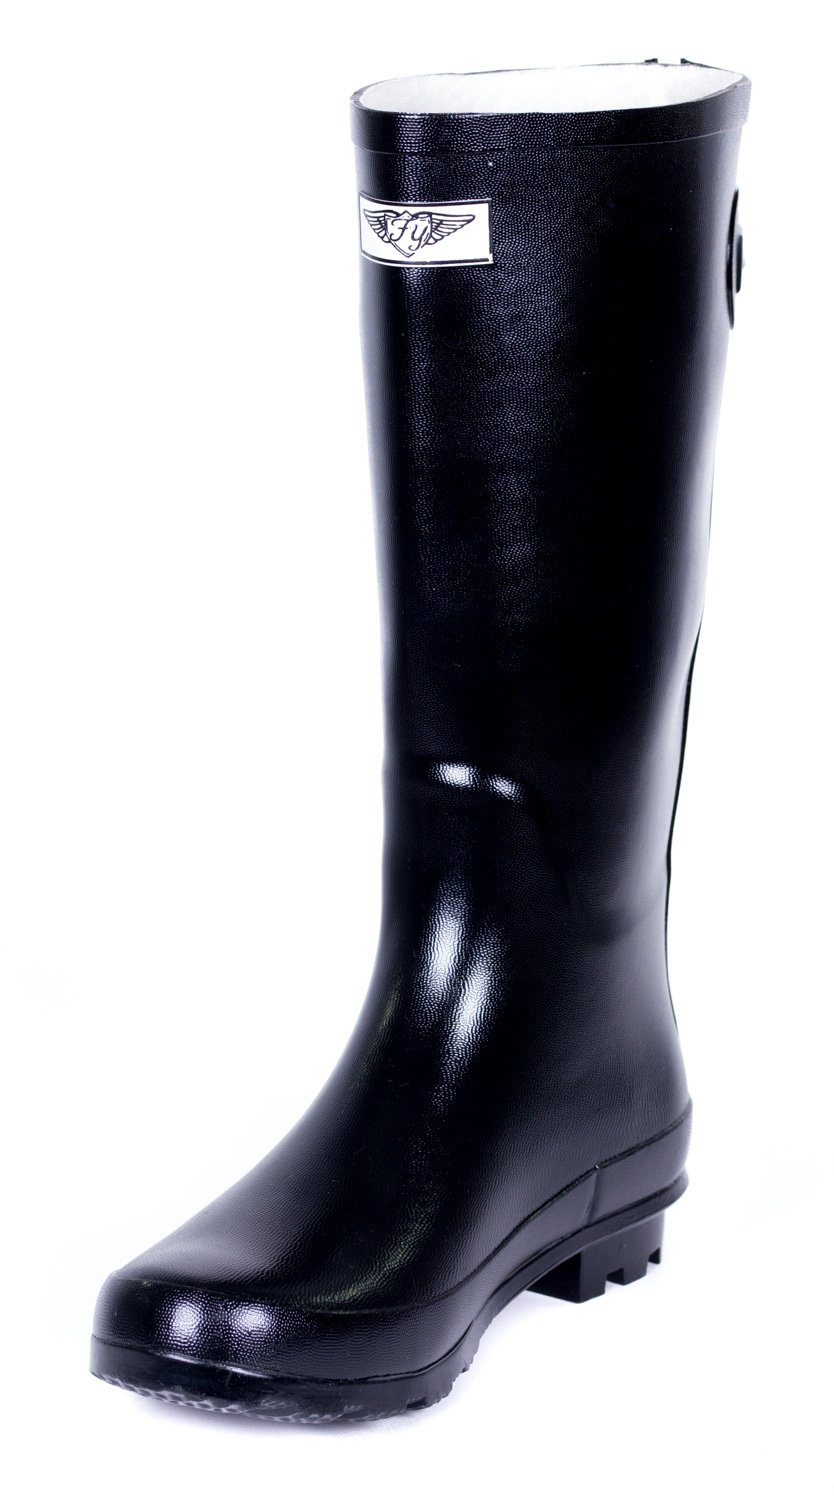 Women Classic Rubber Rain Boots /w Zipper Designs by Forever Young B00GY2NCM6 8 B(M) US|Black